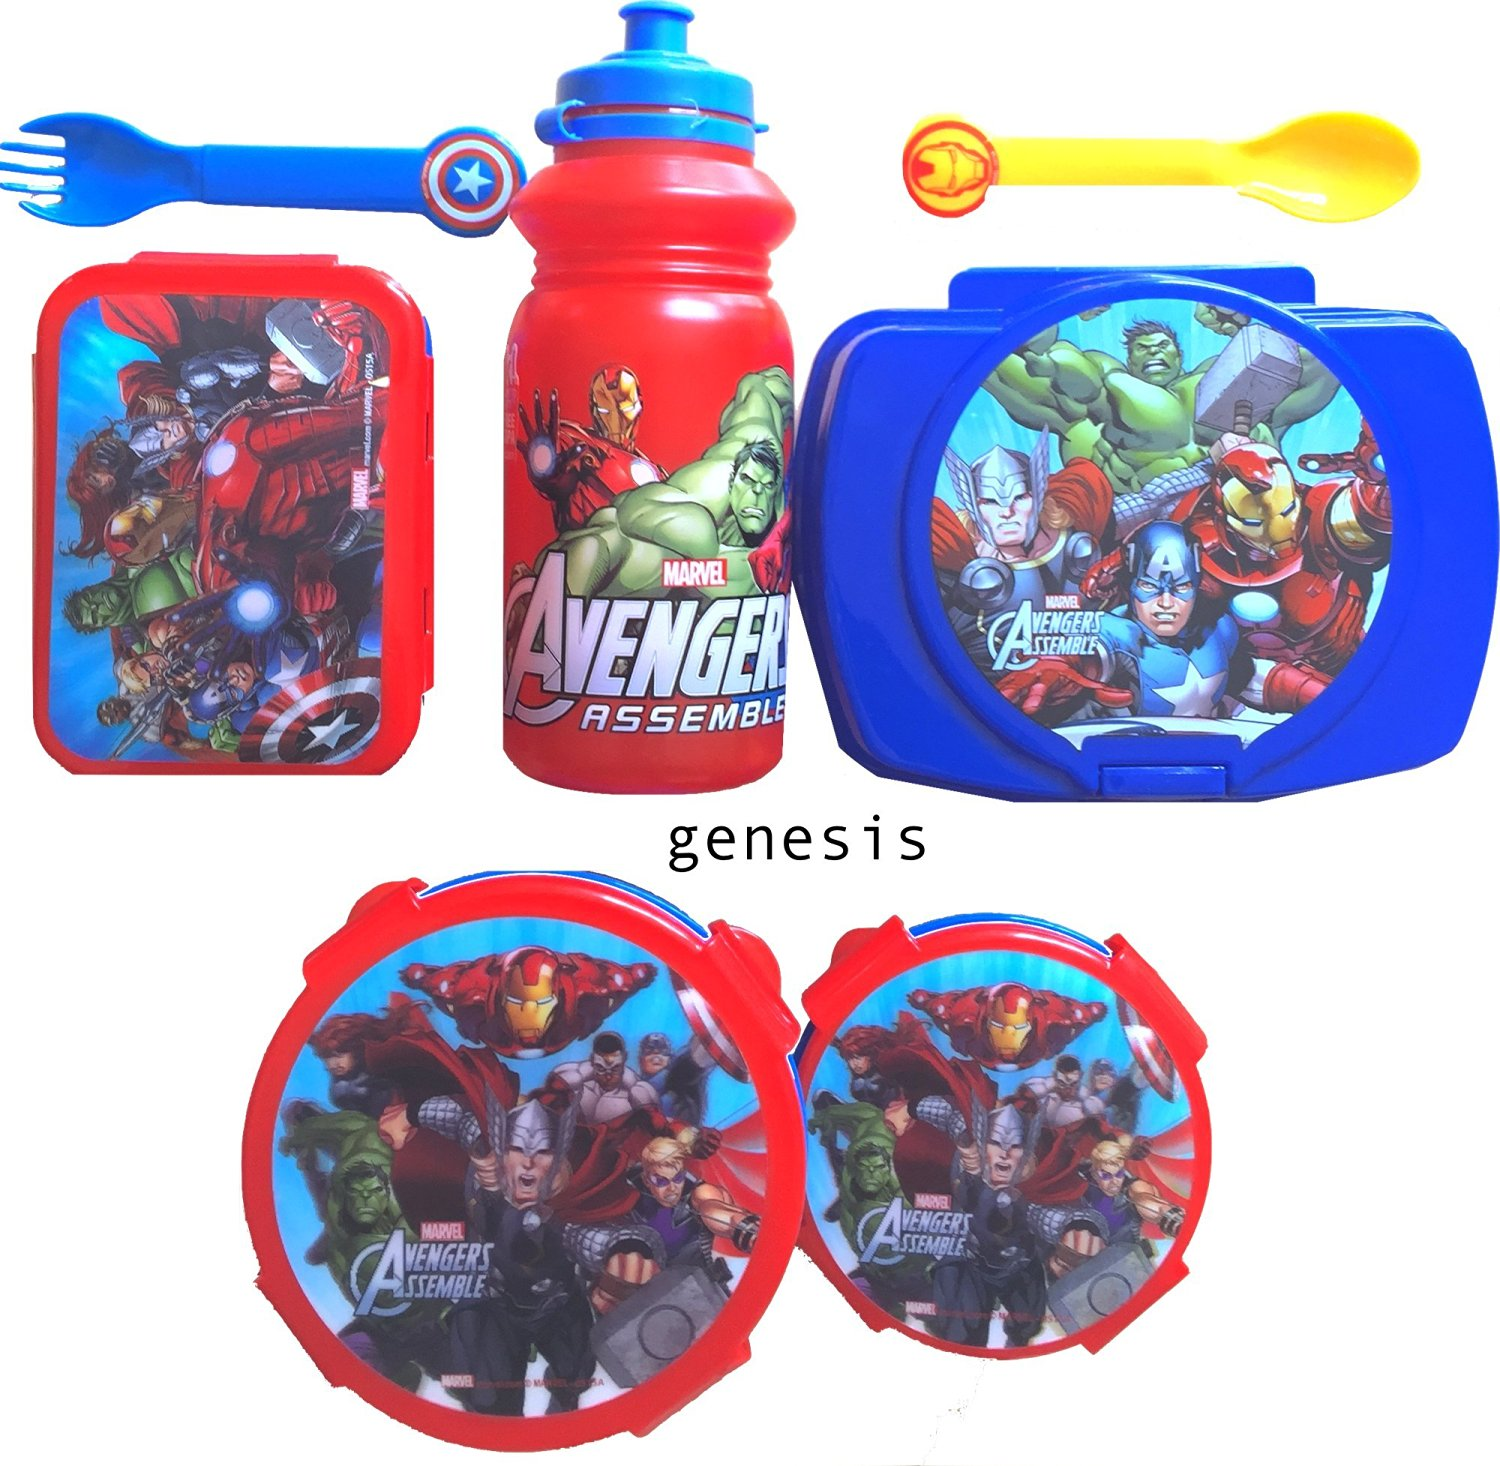 Marvel Avengers Children's Lunch Gift Set With Snack & Food Storages, Bottle, & Utensils